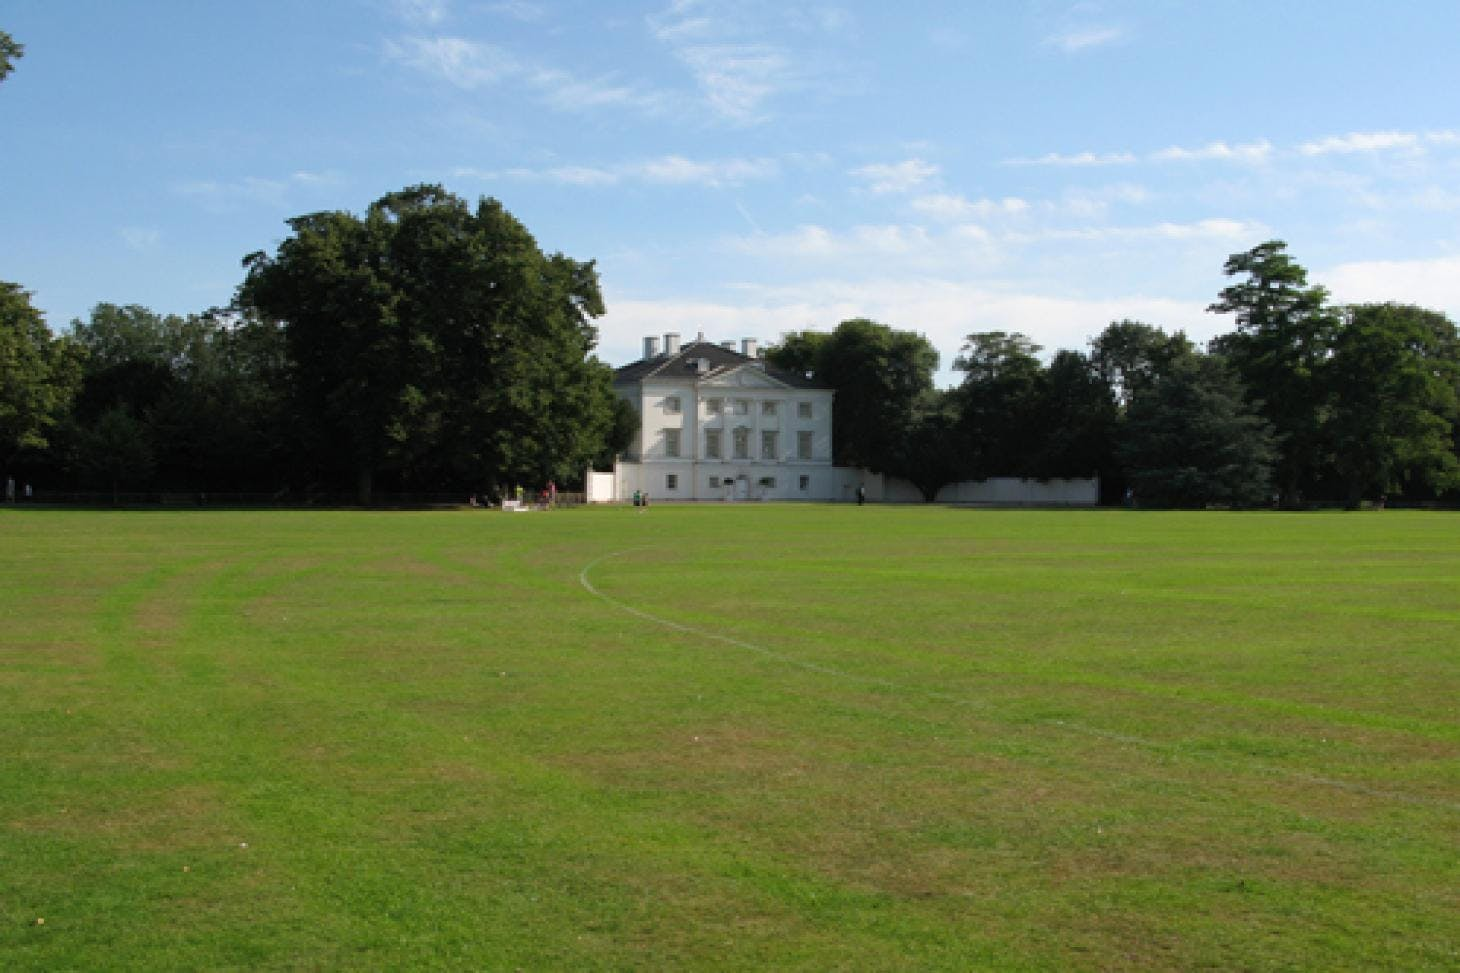 Marble Hill Park Outdoor | Hard (macadam) tennis court